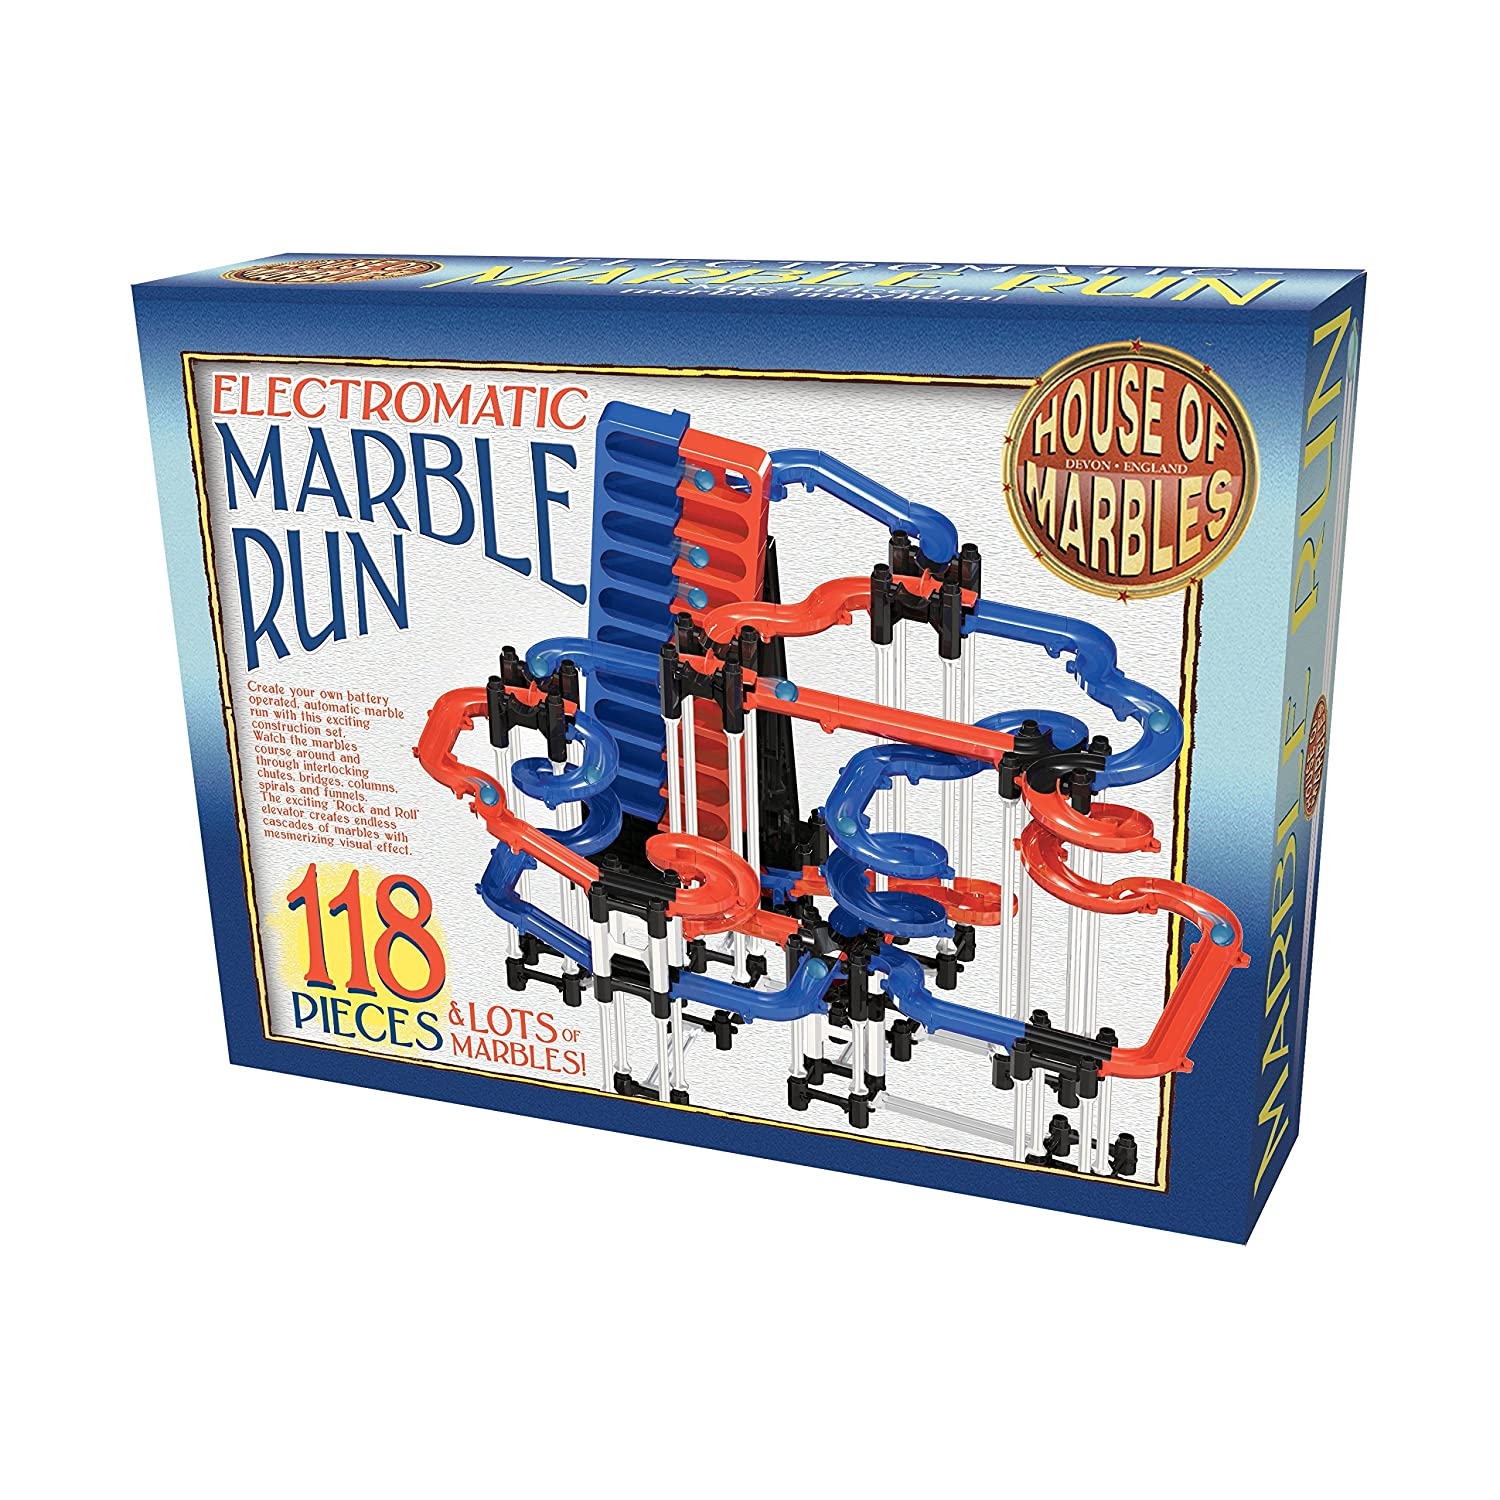 118 Piece Electromatic Marble Run - House of Marbles - Battery Operated Automatic